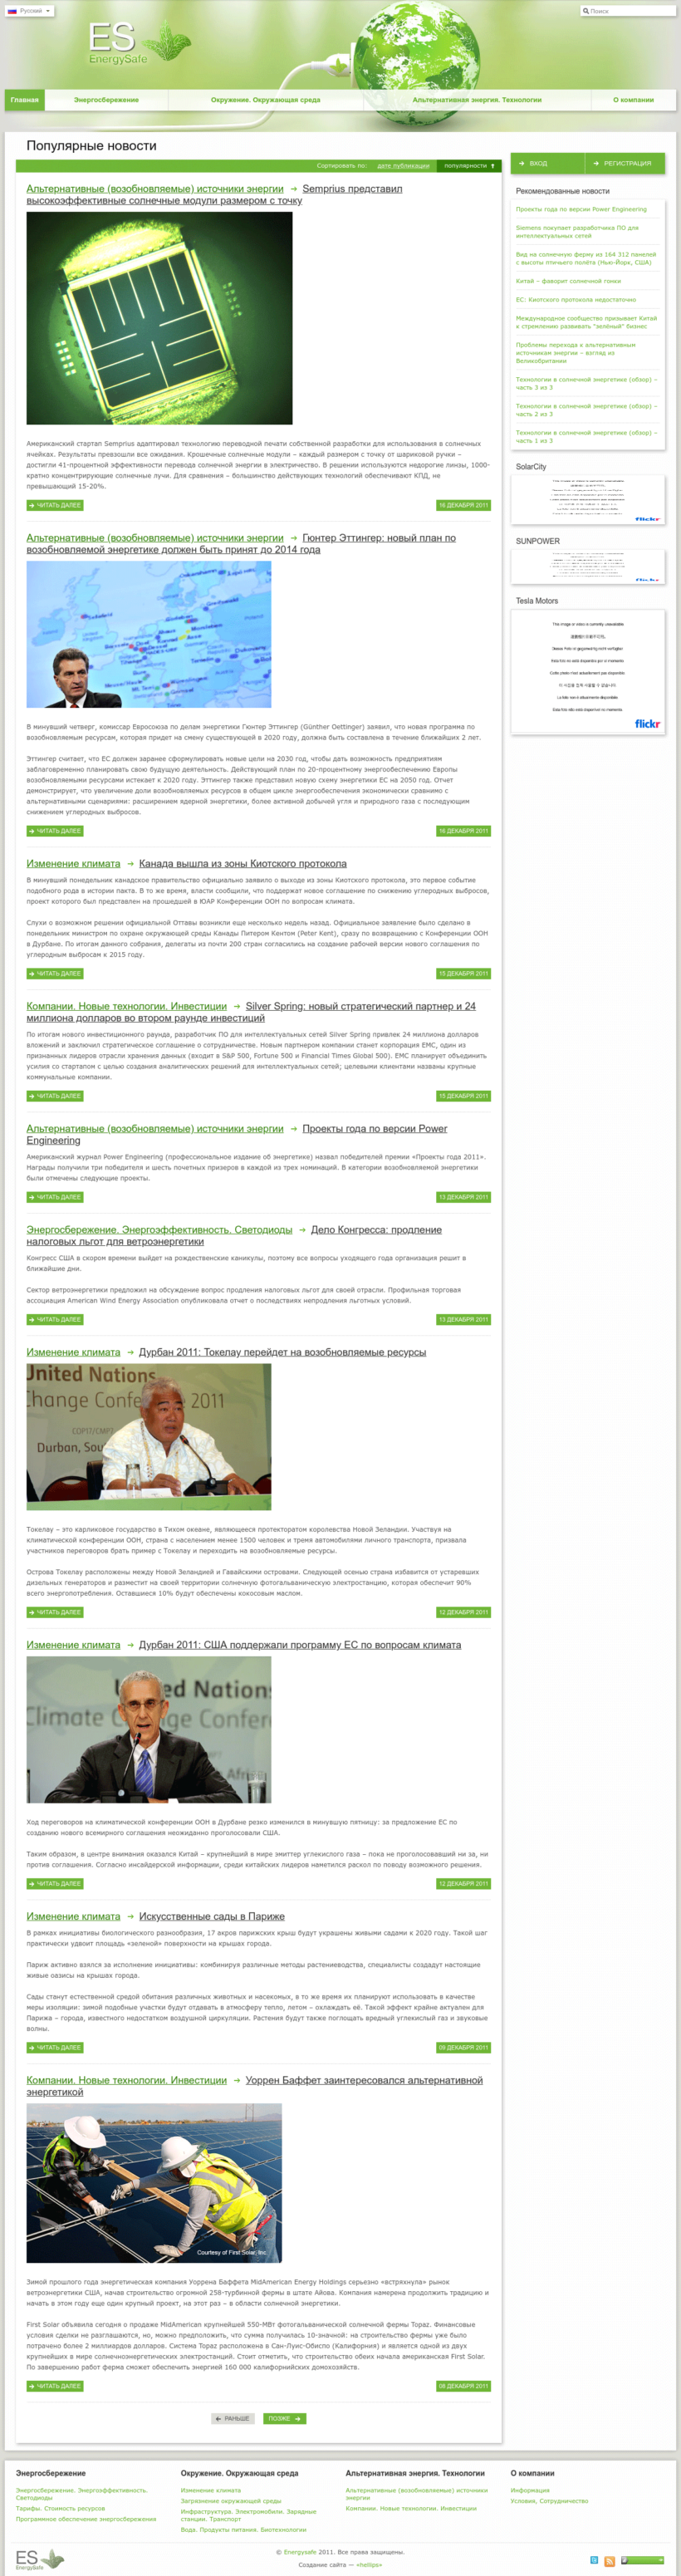 Blog Web Design and its HTML Coding for Ecologic Energy News Agency EnergySafe